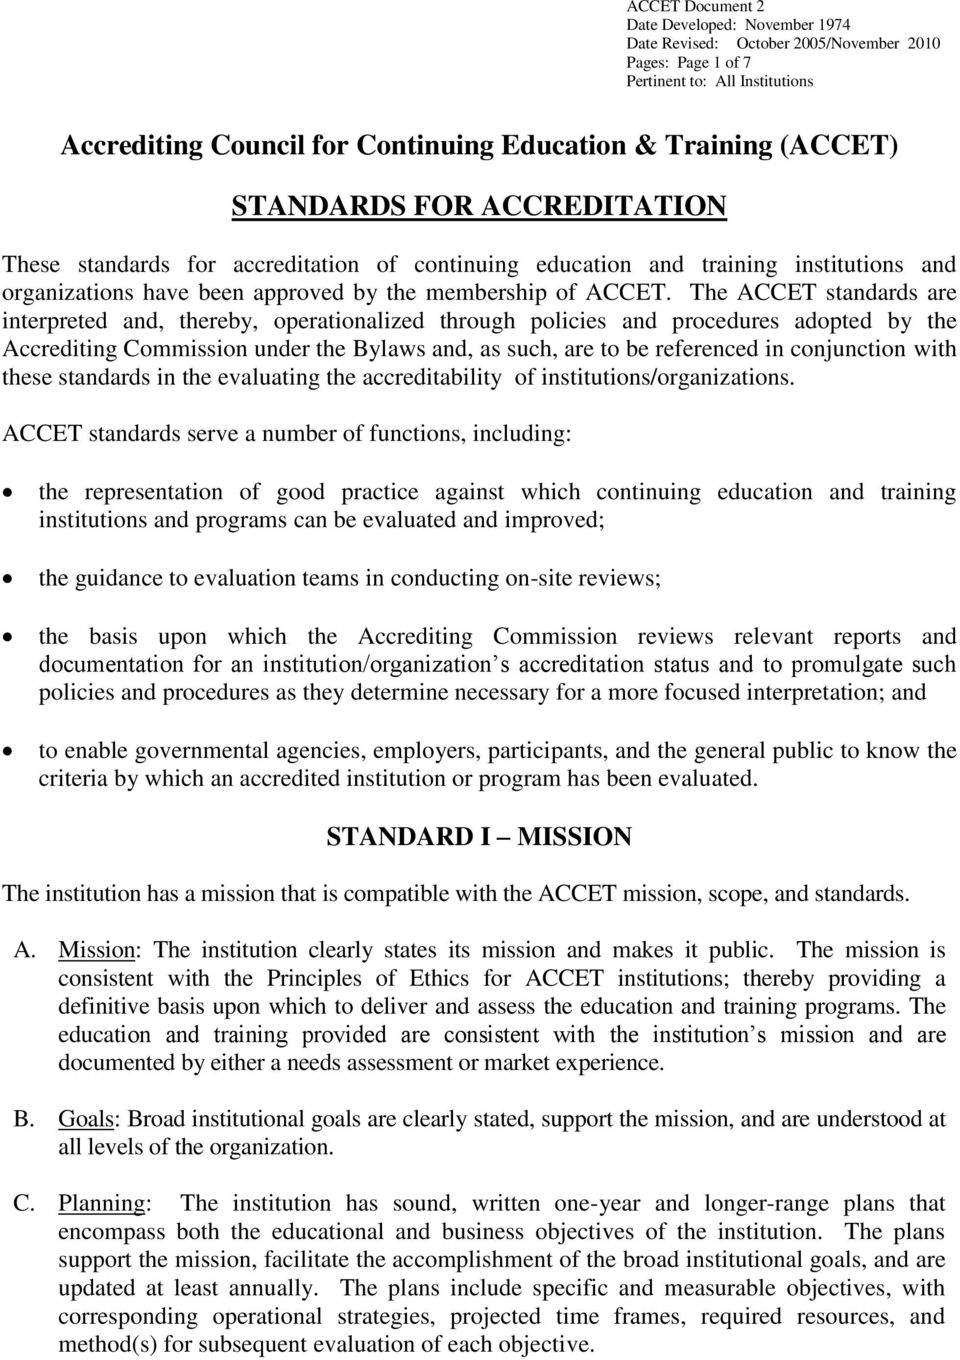 The ACCET standards are interpreted and, thereby, operationalized through policies and procedures adopted by the Accrediting Commission under the Bylaws and, as such, are to be referenced in